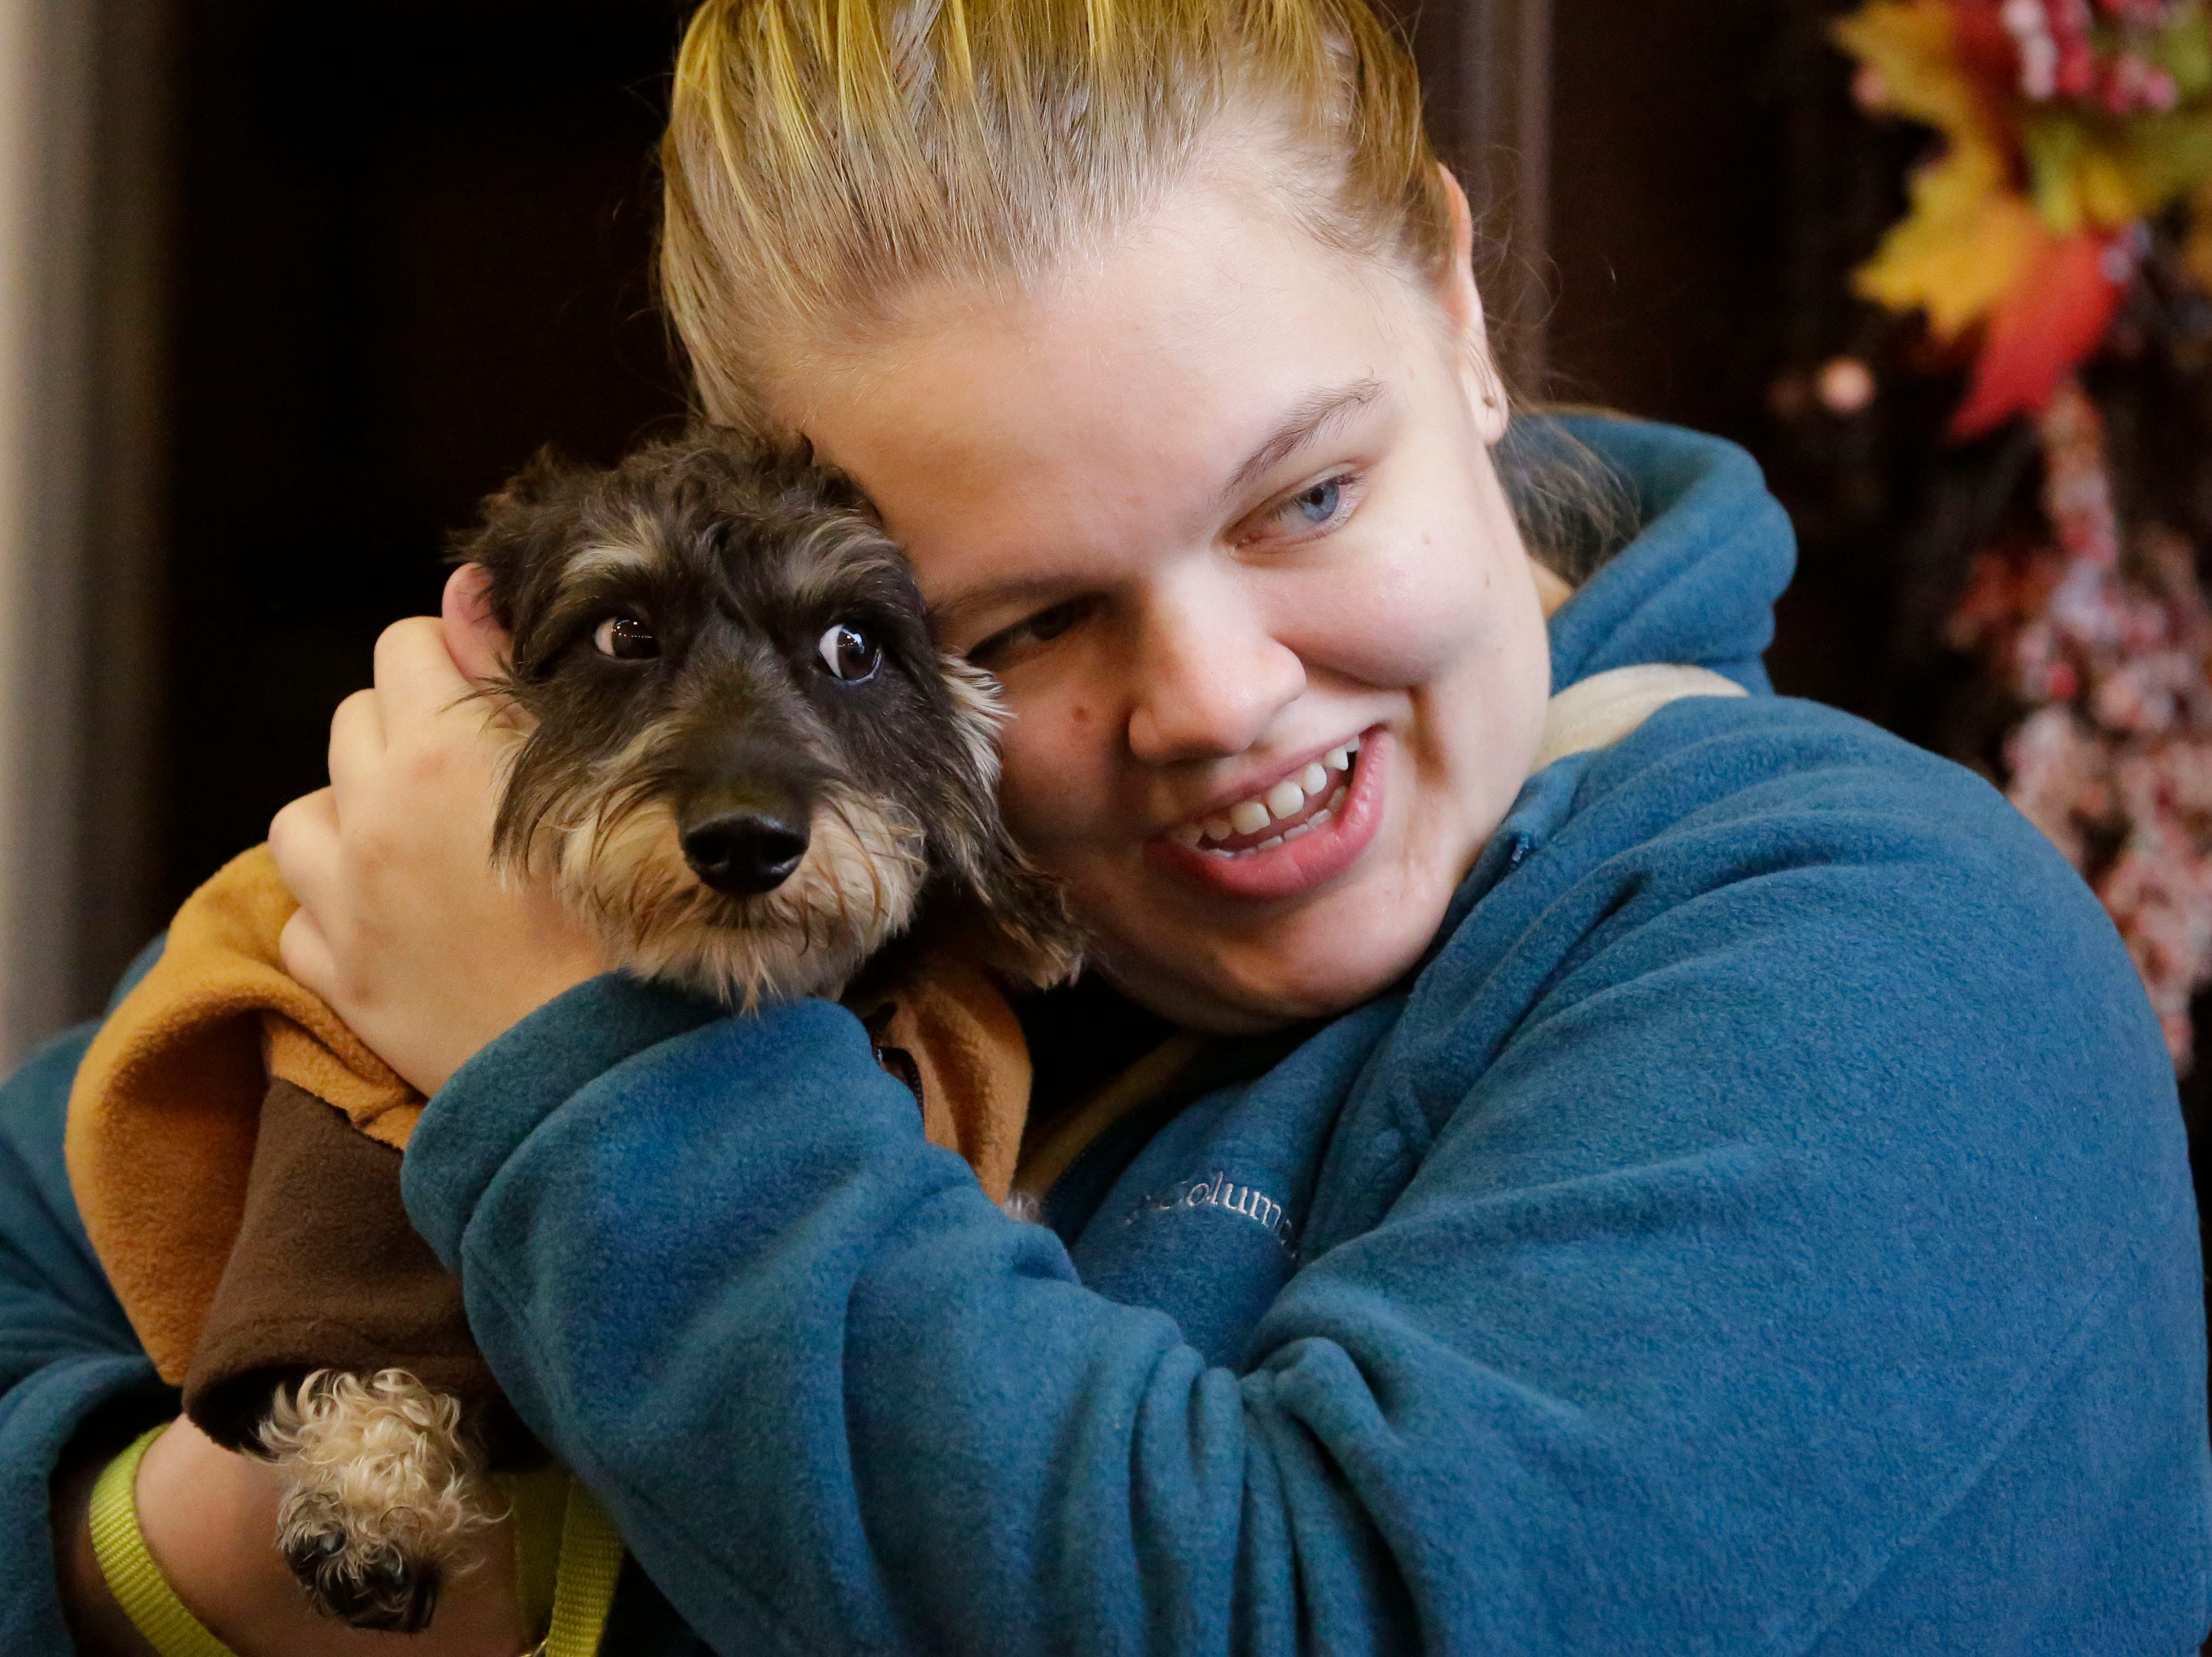 Shannon Smies of Sheboygan holds her dog Draco who is dressed as an Ewoc at Al and Al's Oktoberfest festivities, Saturday October 6, 2018, in Sheboygan, Wis.